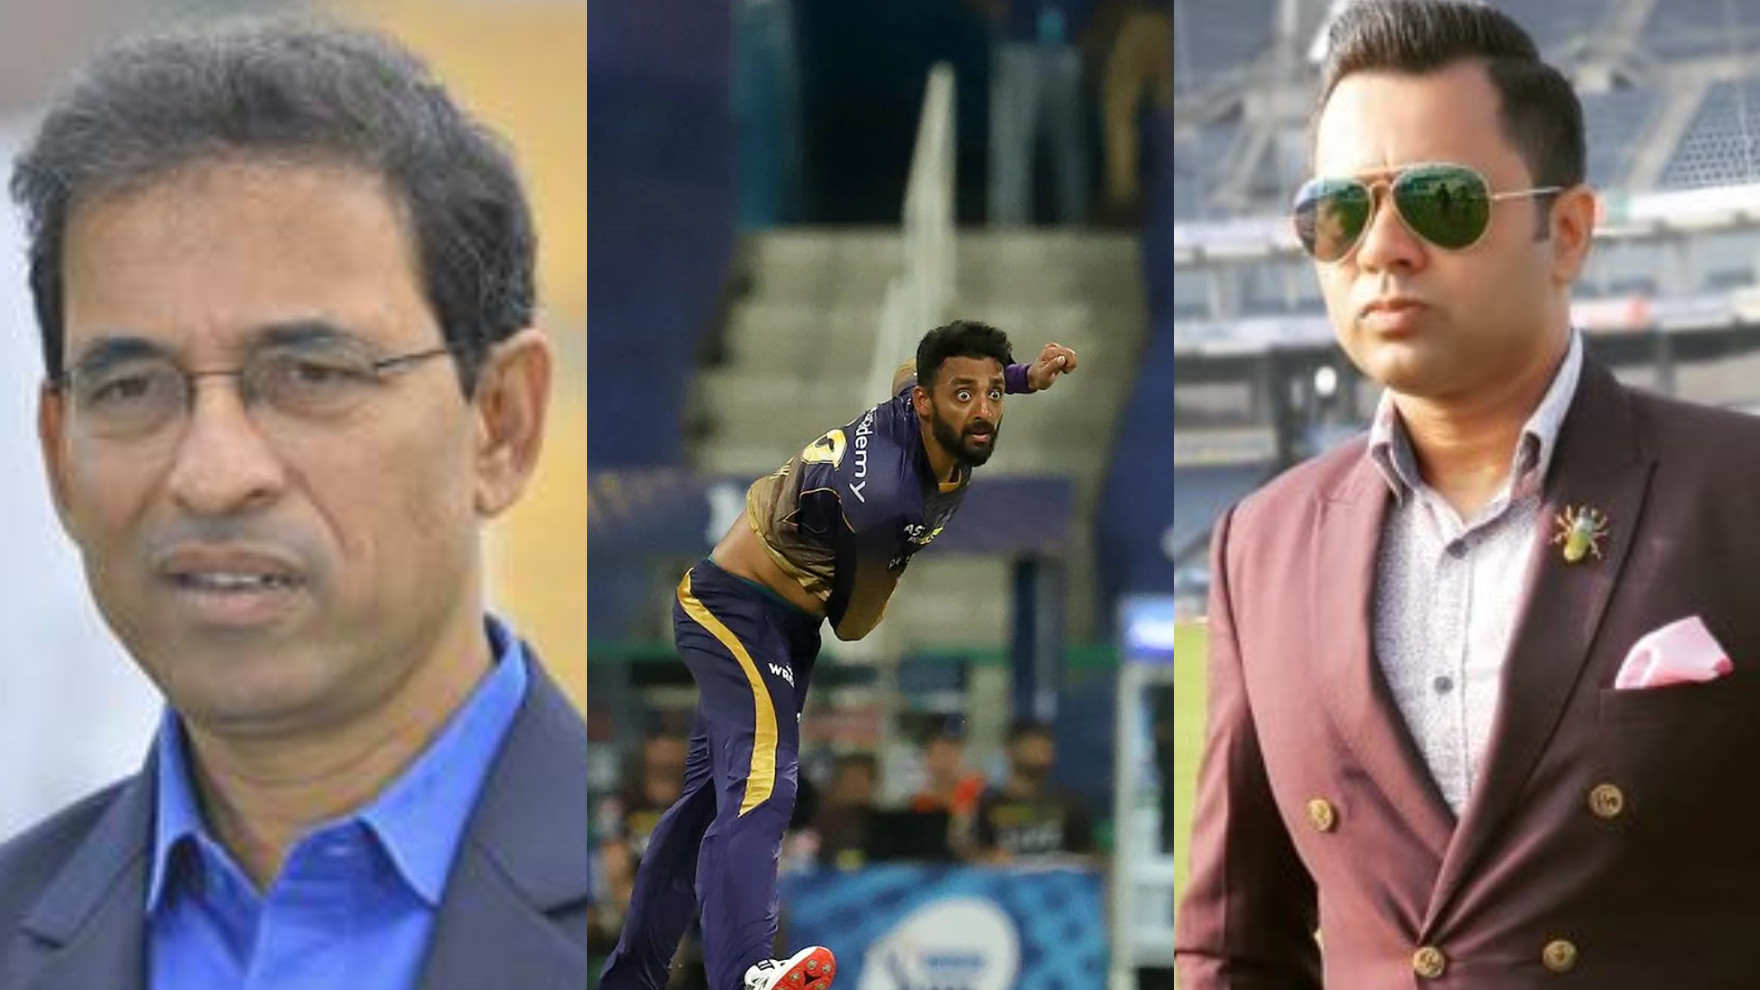 IPL 2021: Cricket fraternity reacts as Varun Chakravarthy-led KKR bowling attack restricts RCB to 92